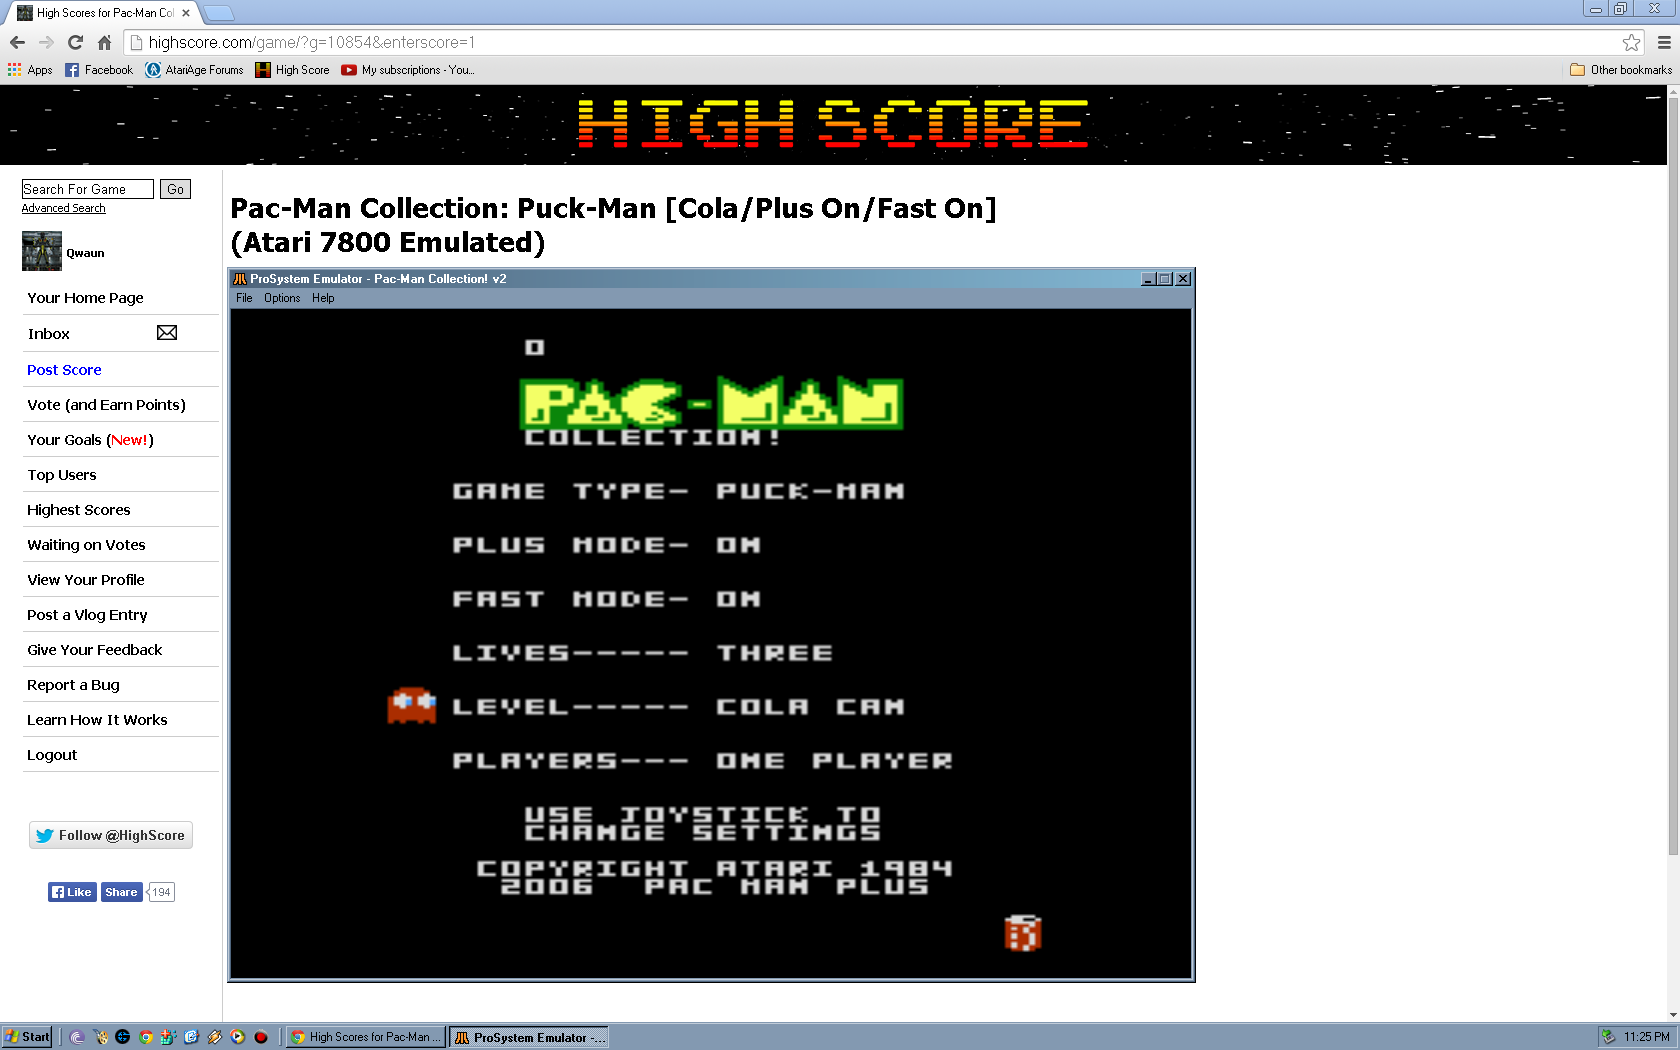 Qwaun: Pac-Man Collection: Puck-Man [Cola/Plus On/Fast On] (Atari 7800 Emulated) 14,780 points on 2014-05-08 01:34:58